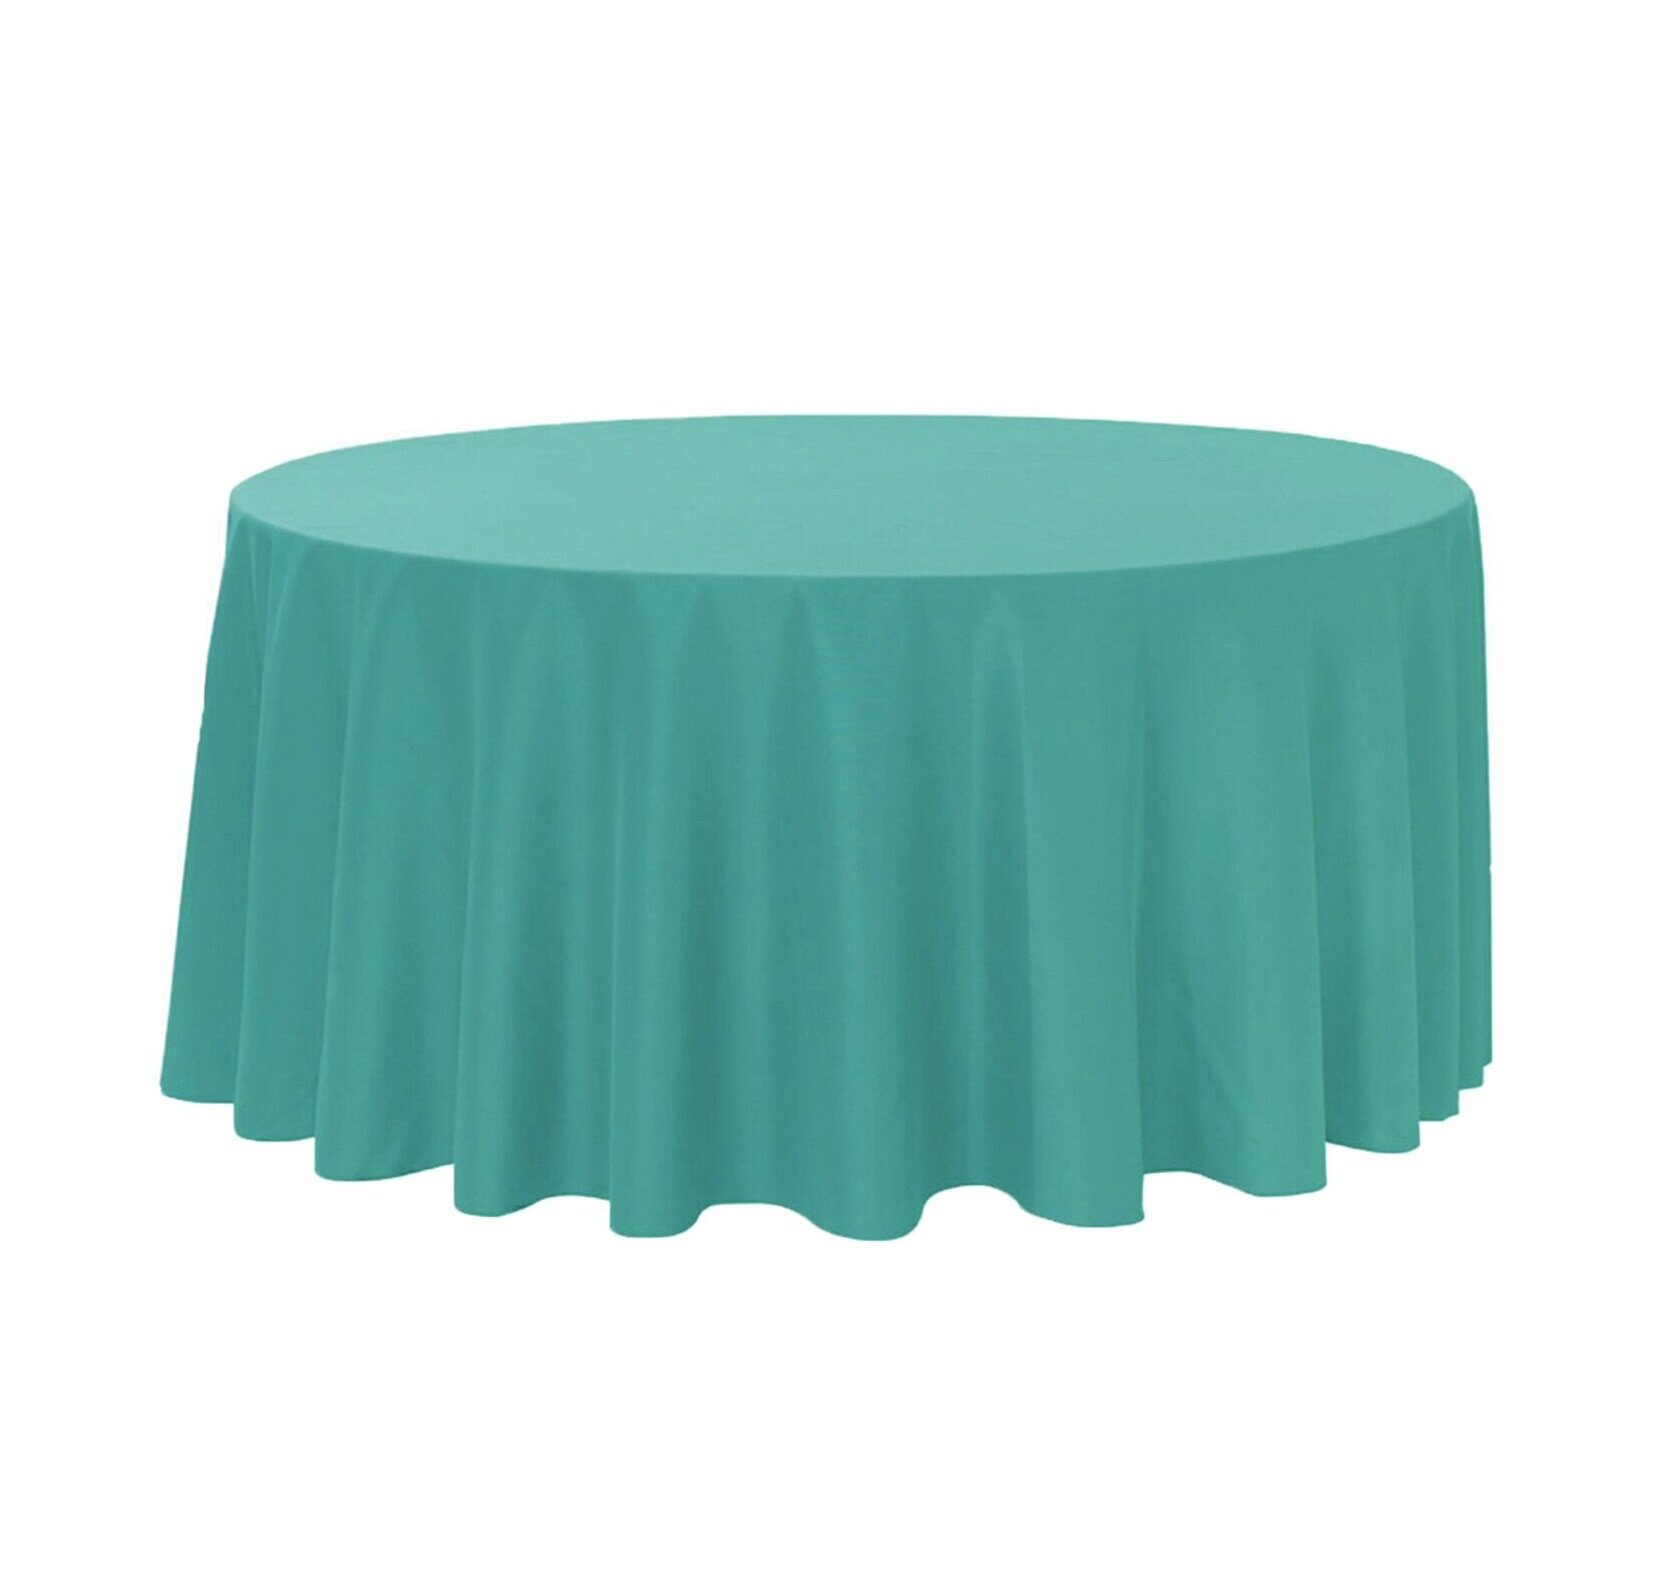 TEAL LINEN ROUND TABLECLOTH (3.3 M DIA.)  $20+GST